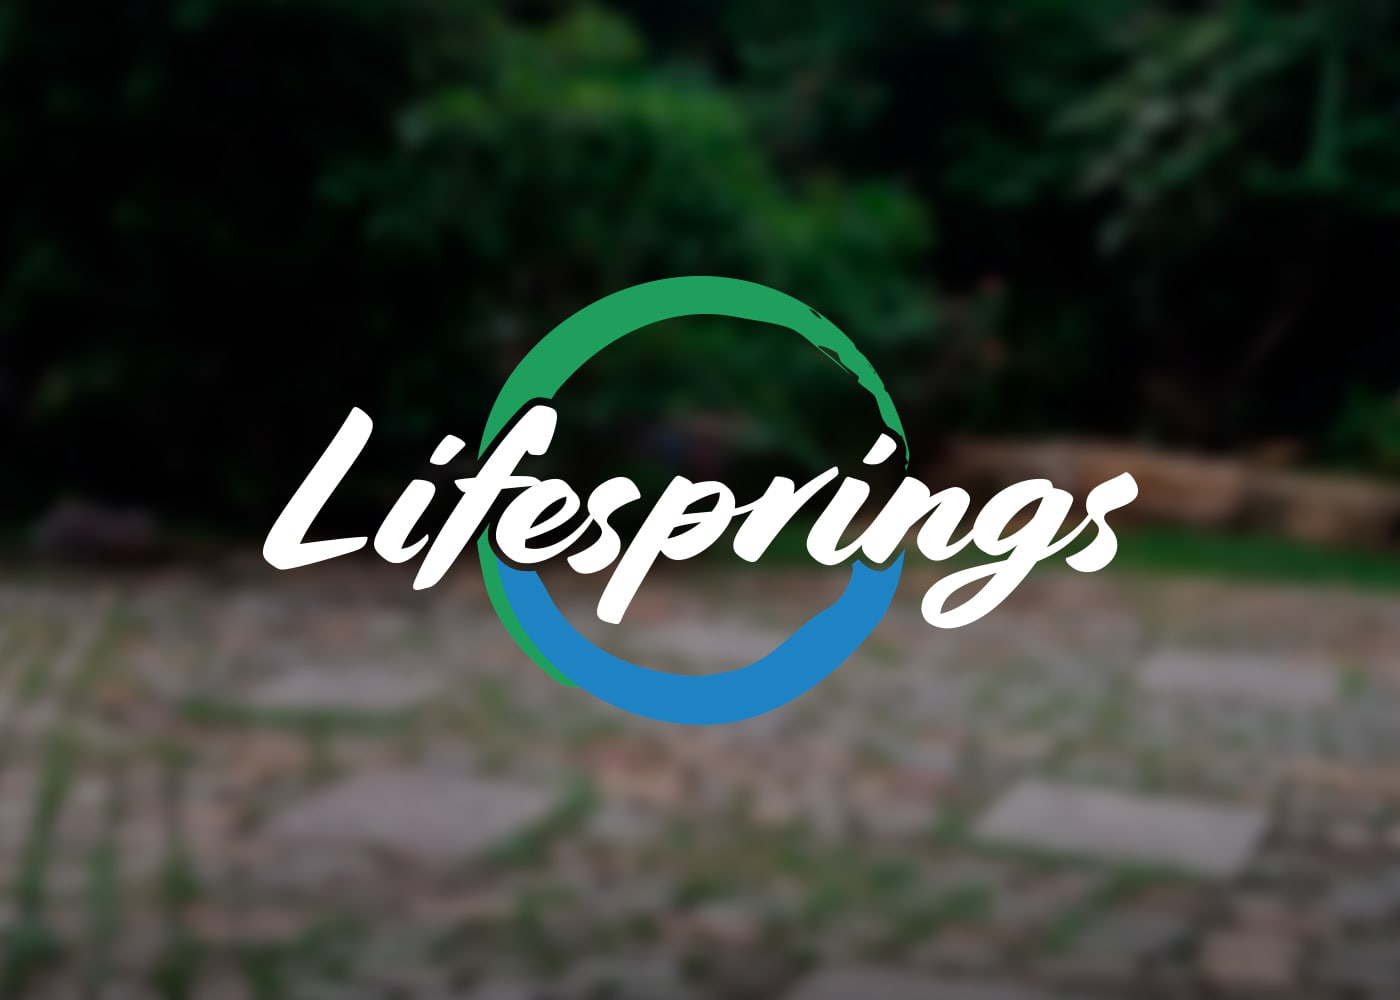 Lifesprings | Logo & Branding